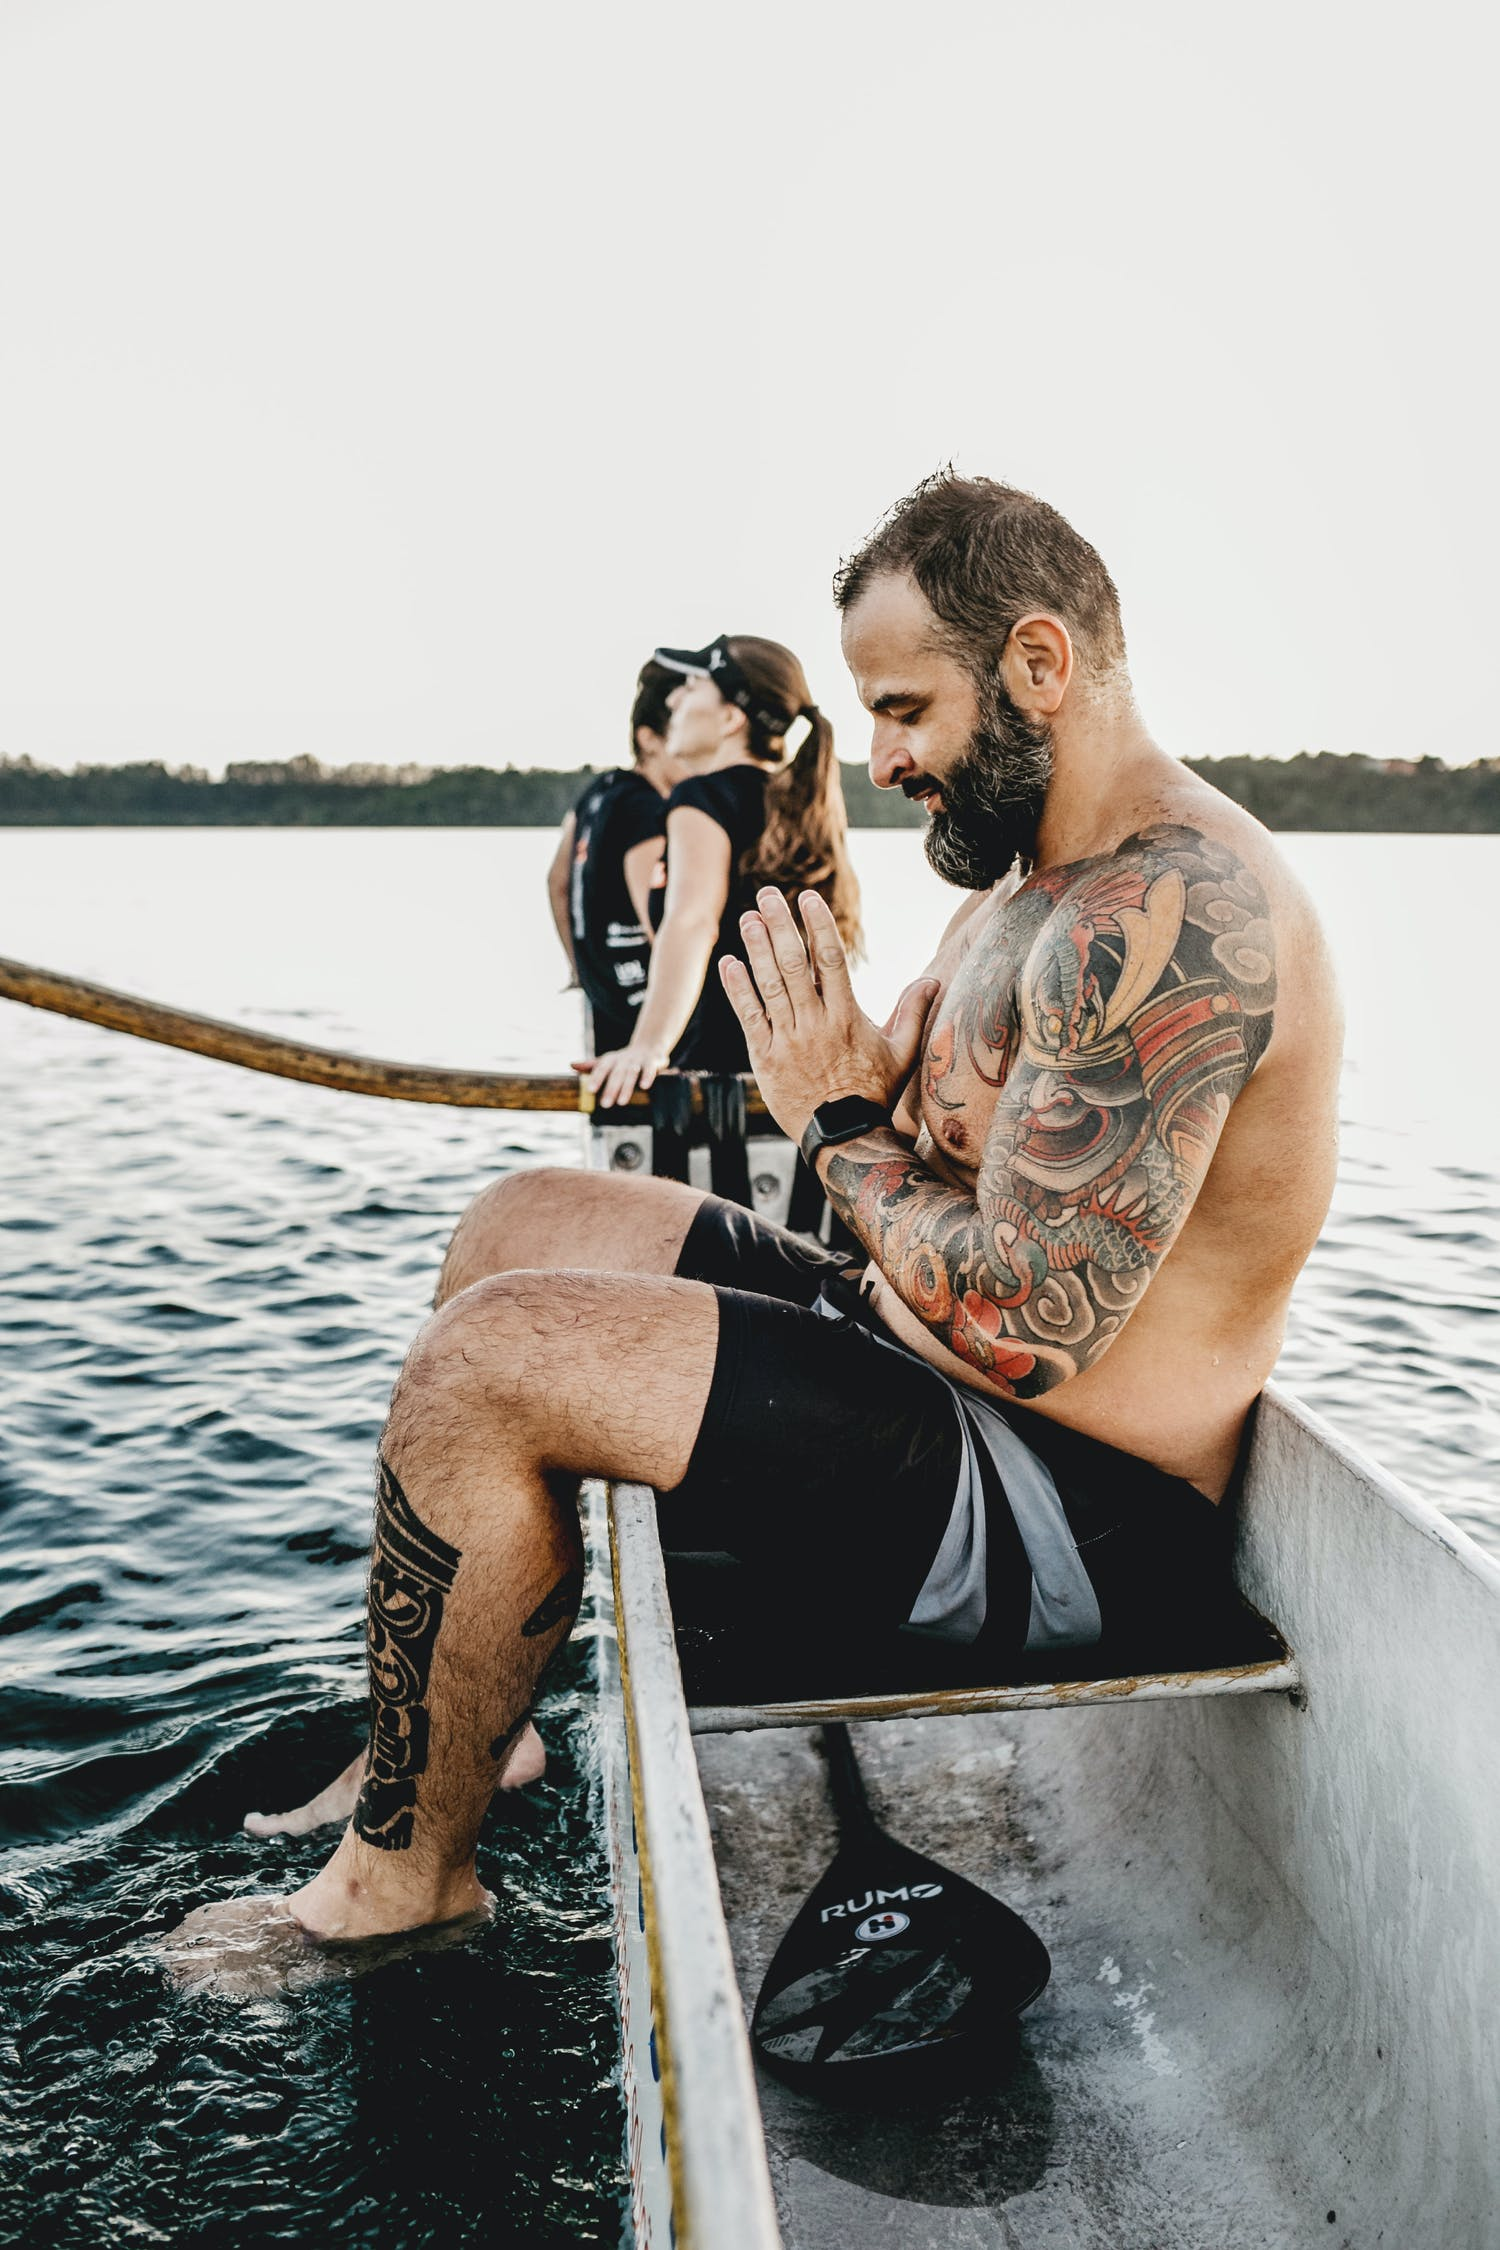 Tattooed sportsman praying in boat against unrecognizable friends on river